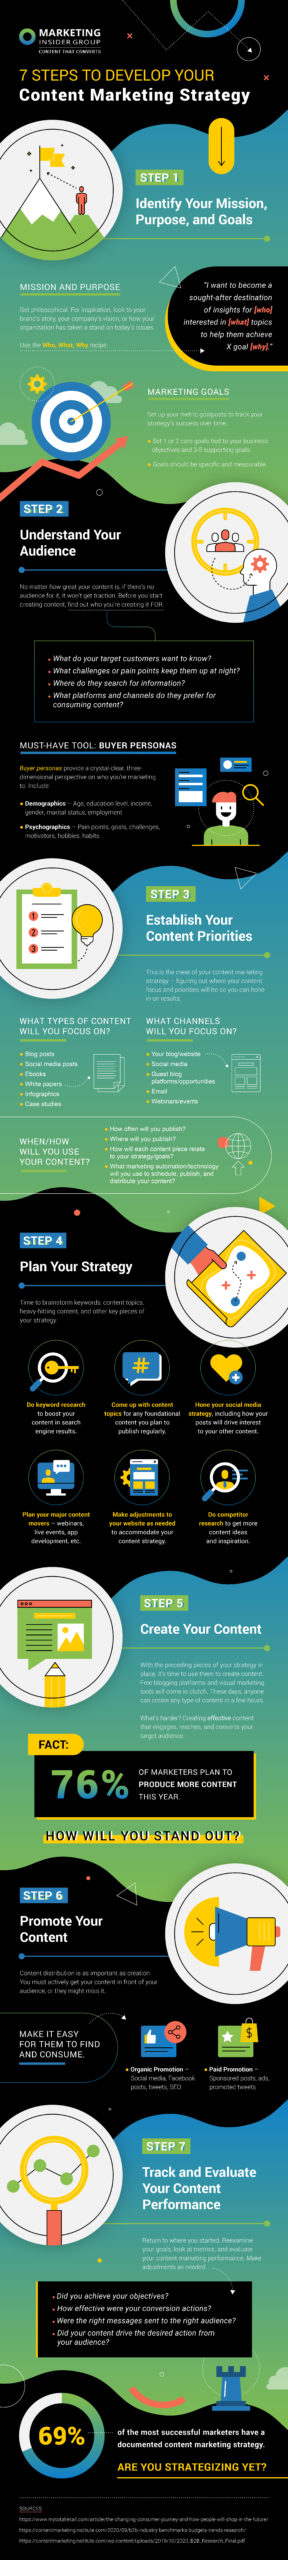 Infographic describing 7 steps to content marketing strategy